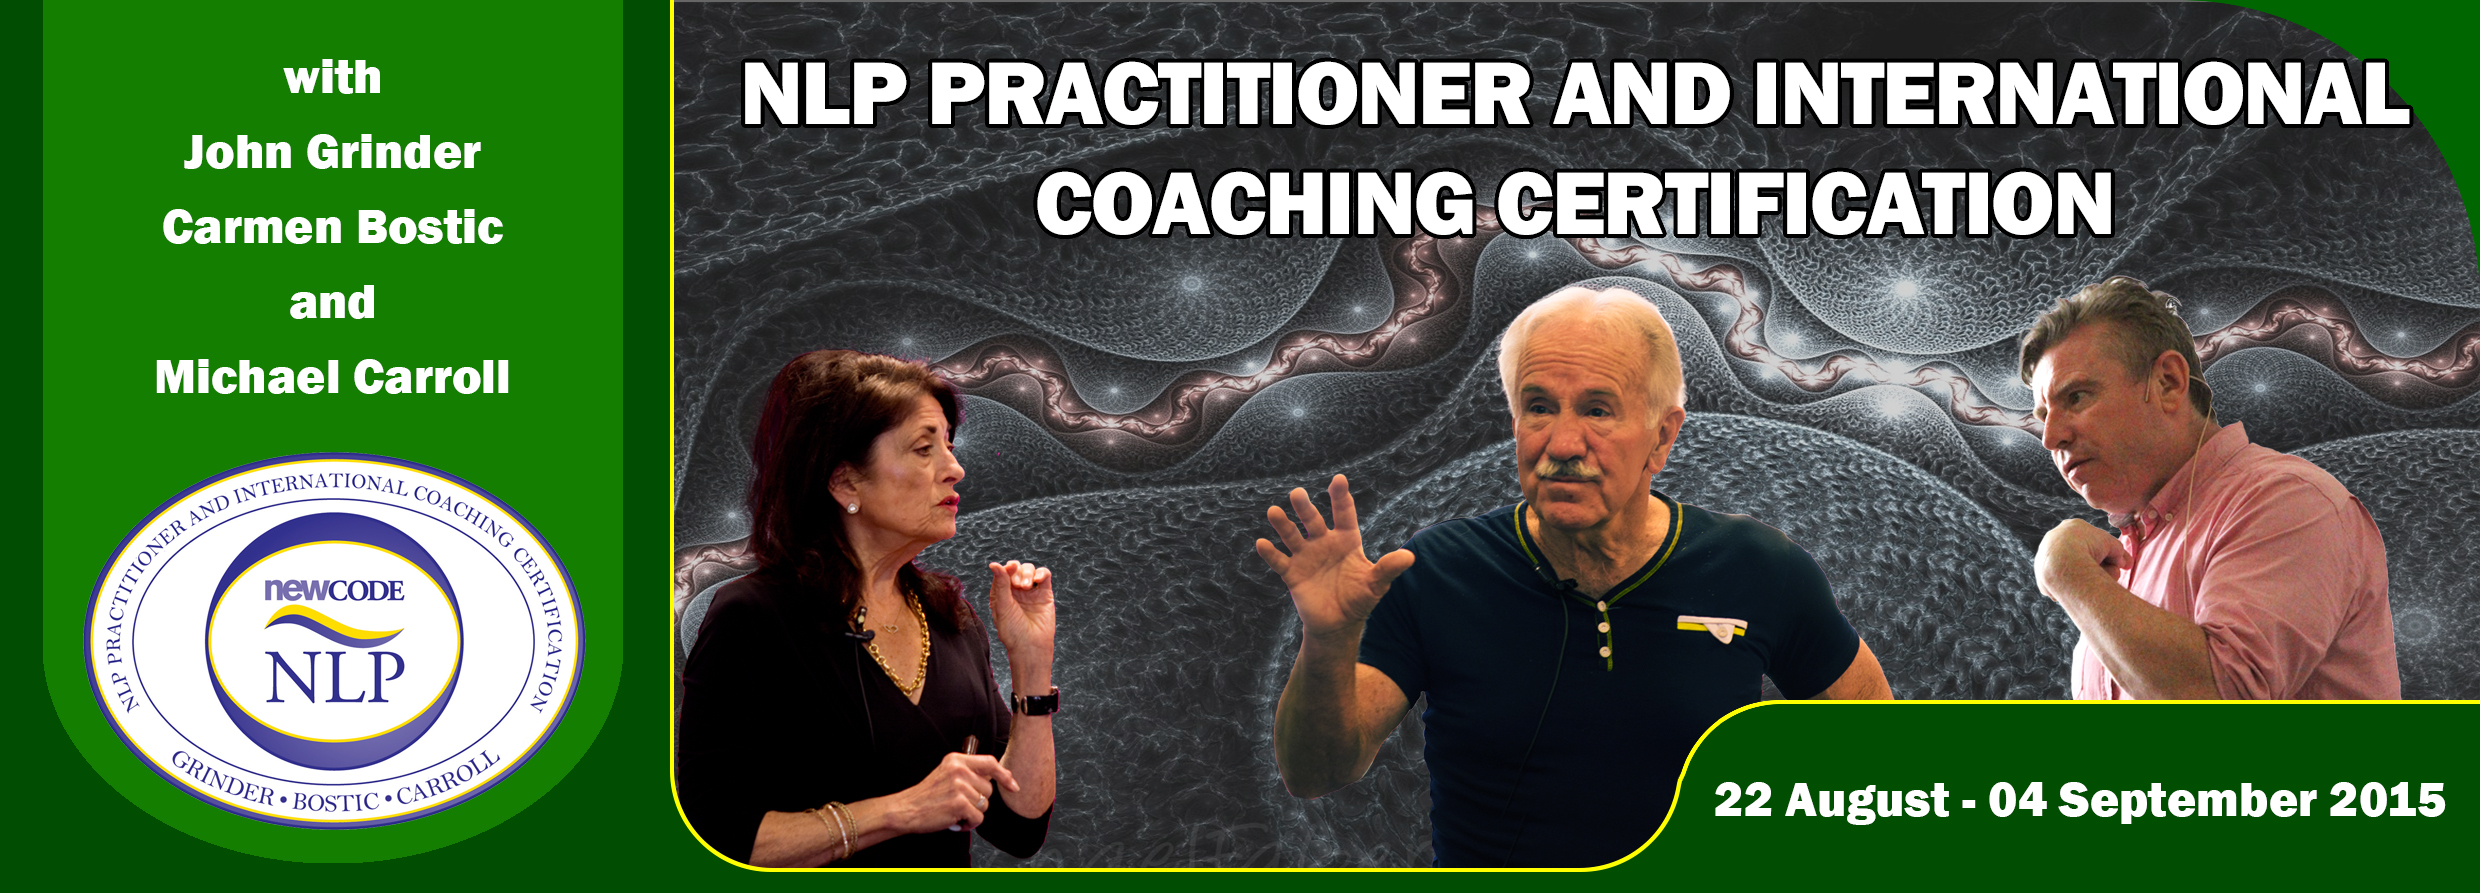 NLP Practitioner and International Coaching Certification